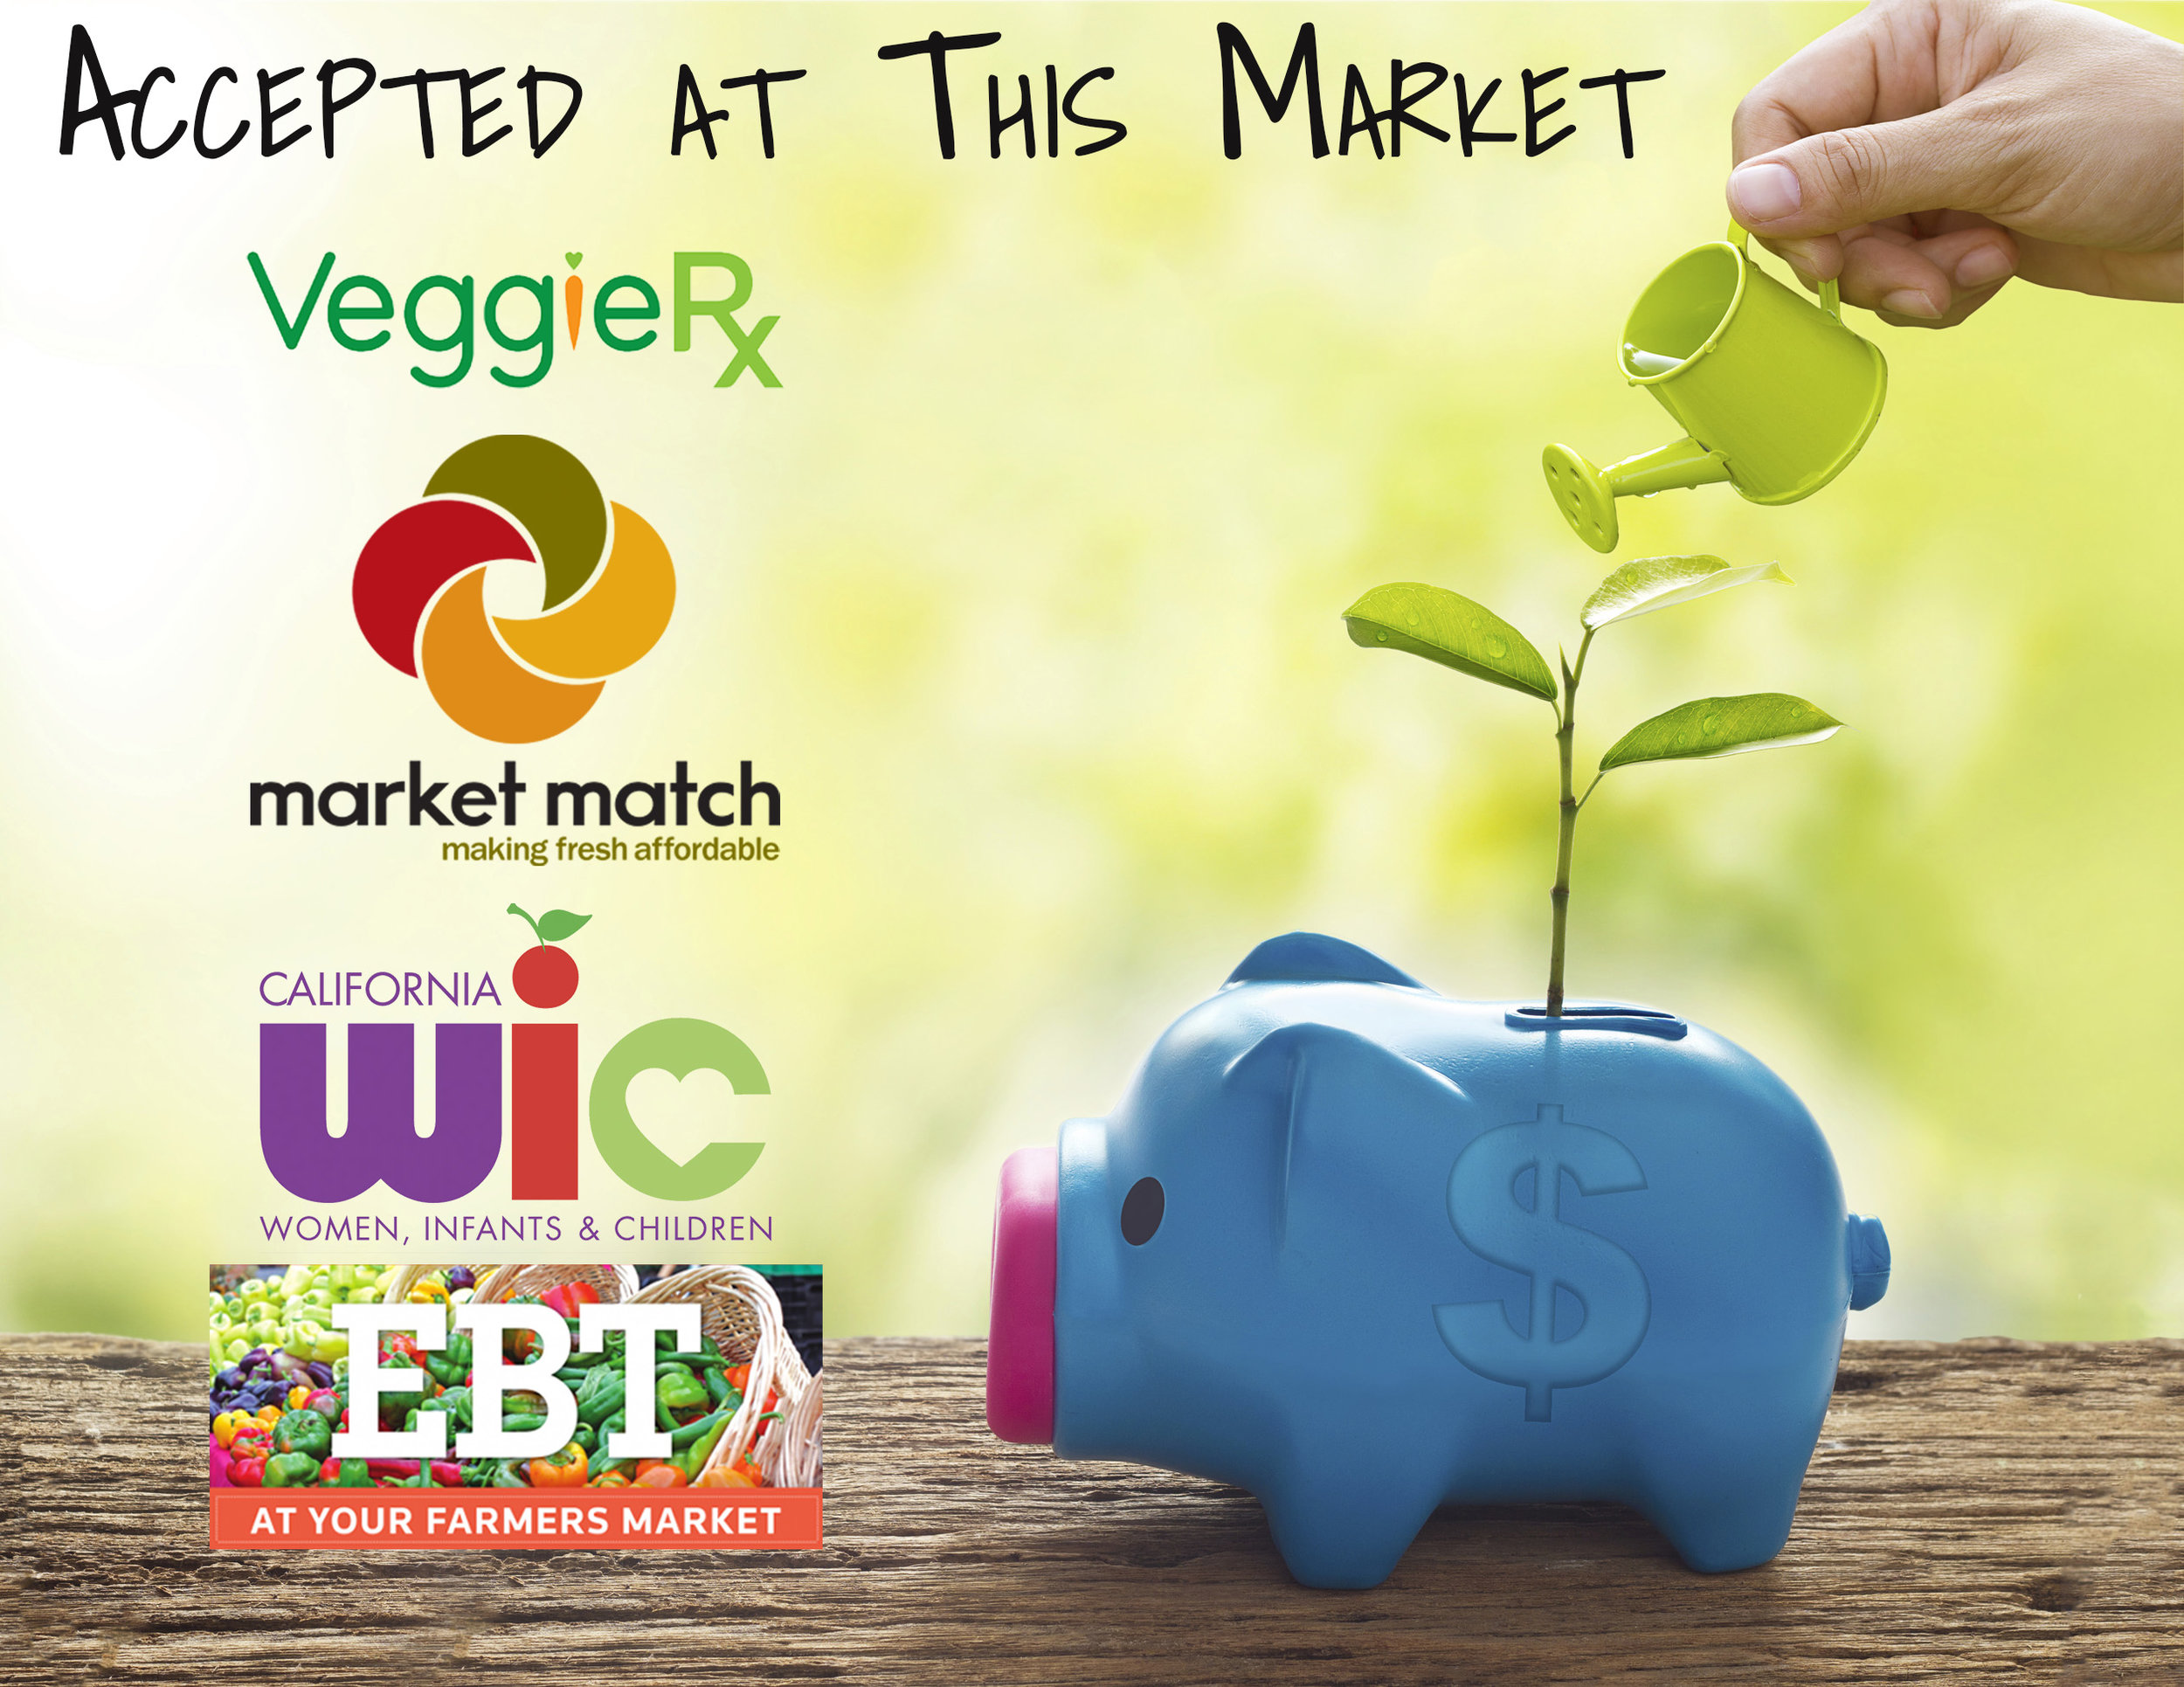 - EBT, WIC & Match Program are Accepted:Thanks to the Market-Match Grant, EBT customers can now receive a dollar for dollar match, up to $10 free to spend on fruits and vegetables at Castro Valley's Farmers' Market!